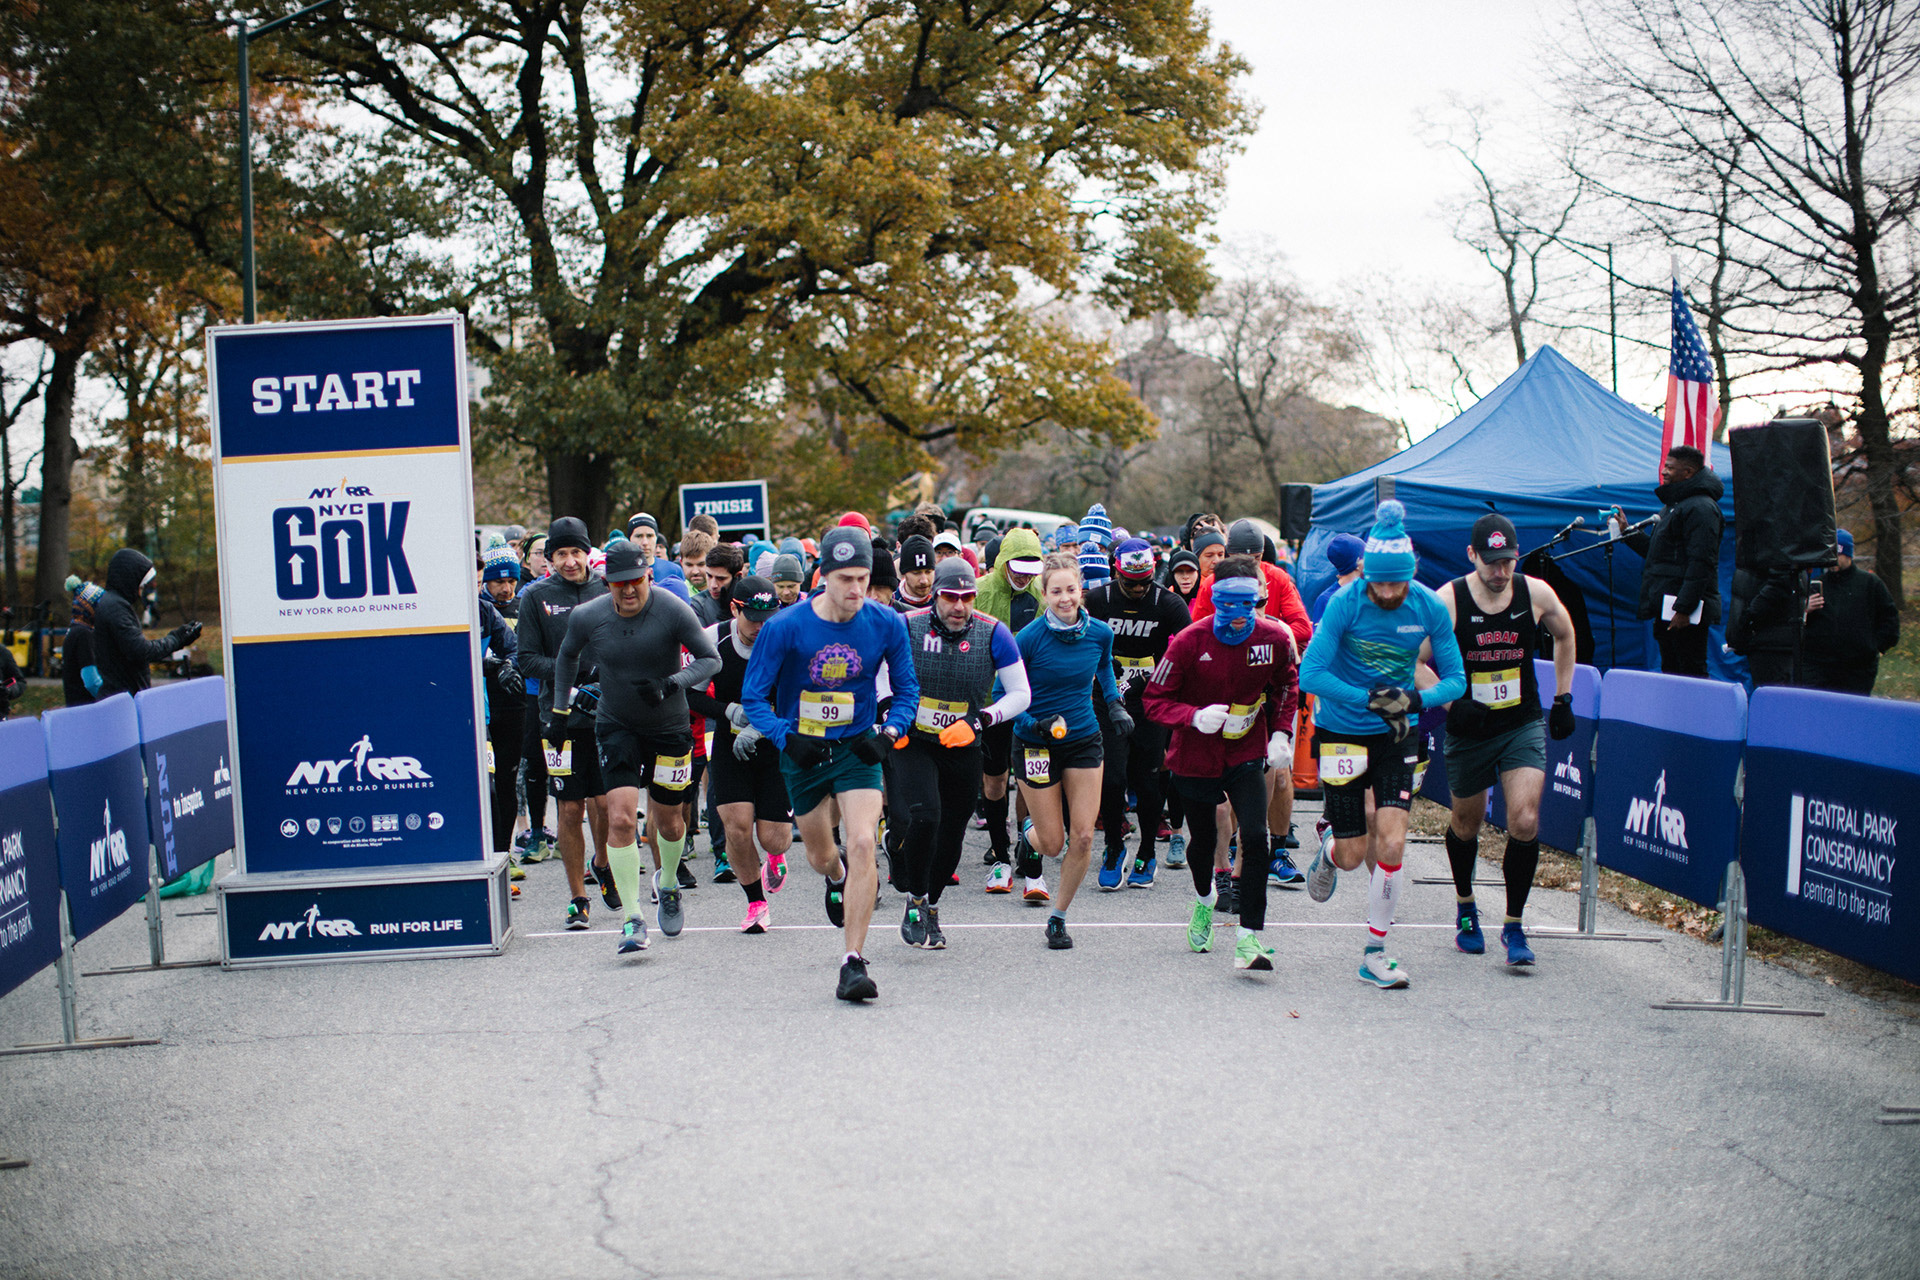 Runners at the start of the NYRR NYC 60K Sunday